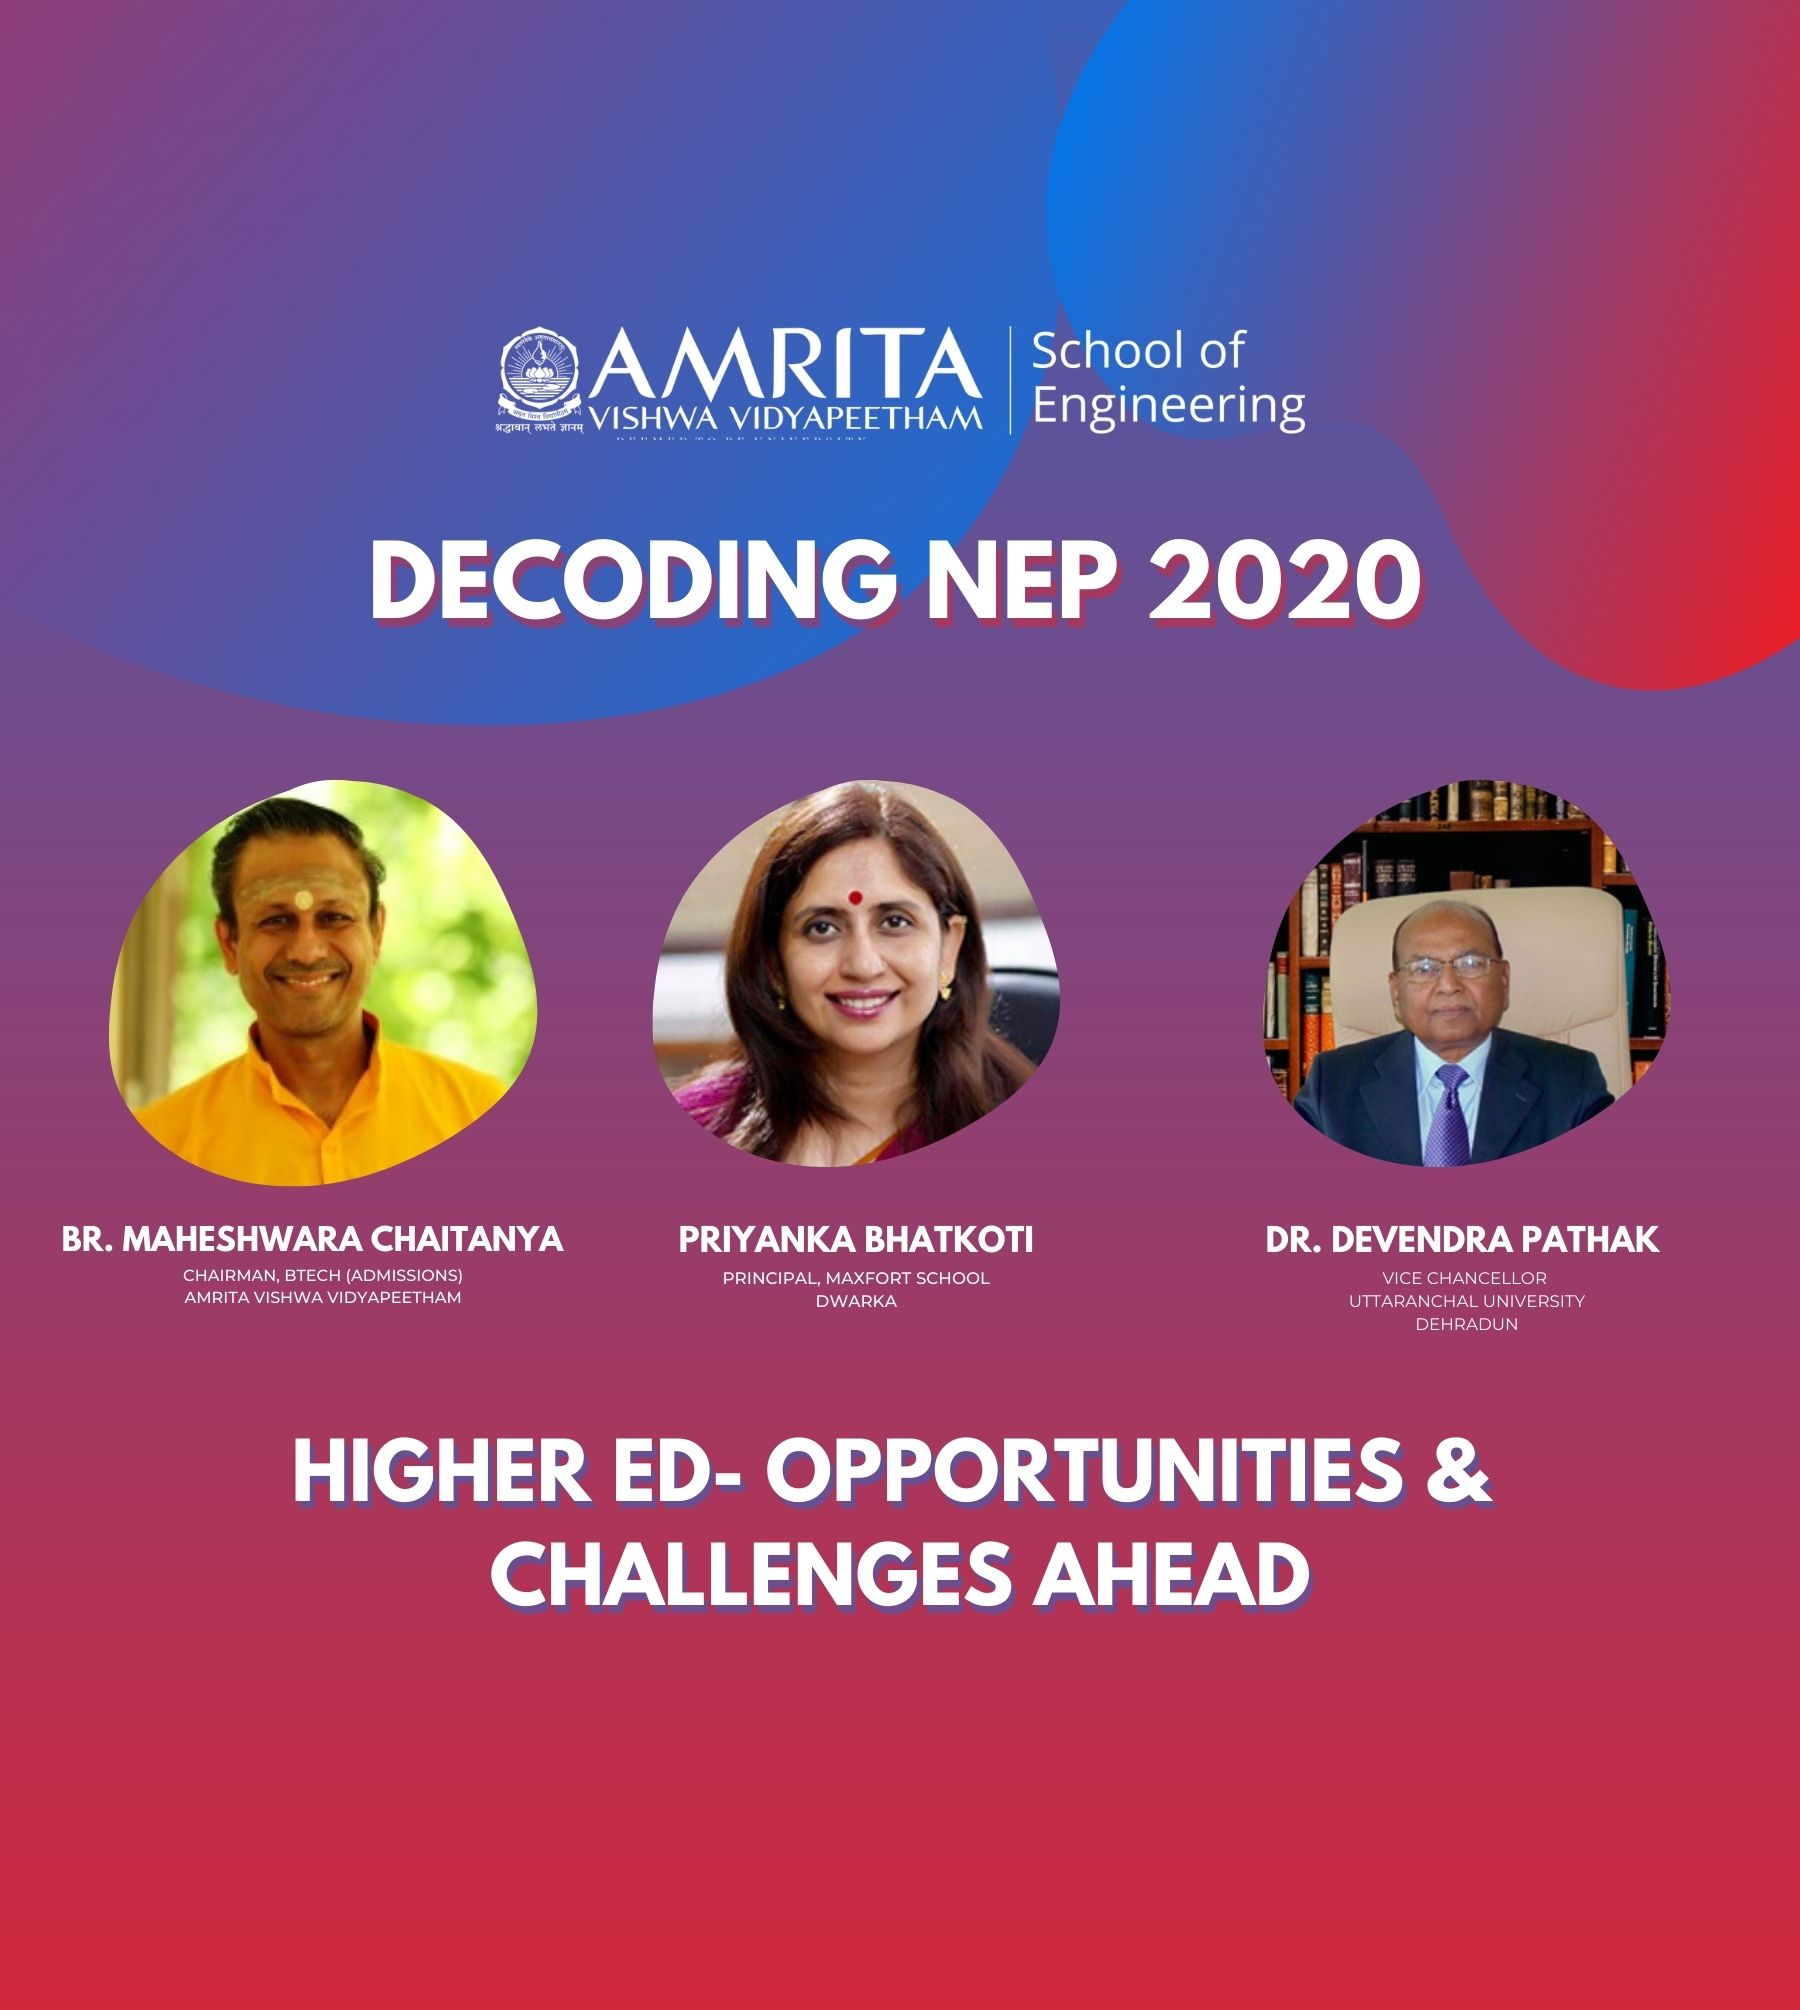 Higher Ed- Opportunities and challenges ahead